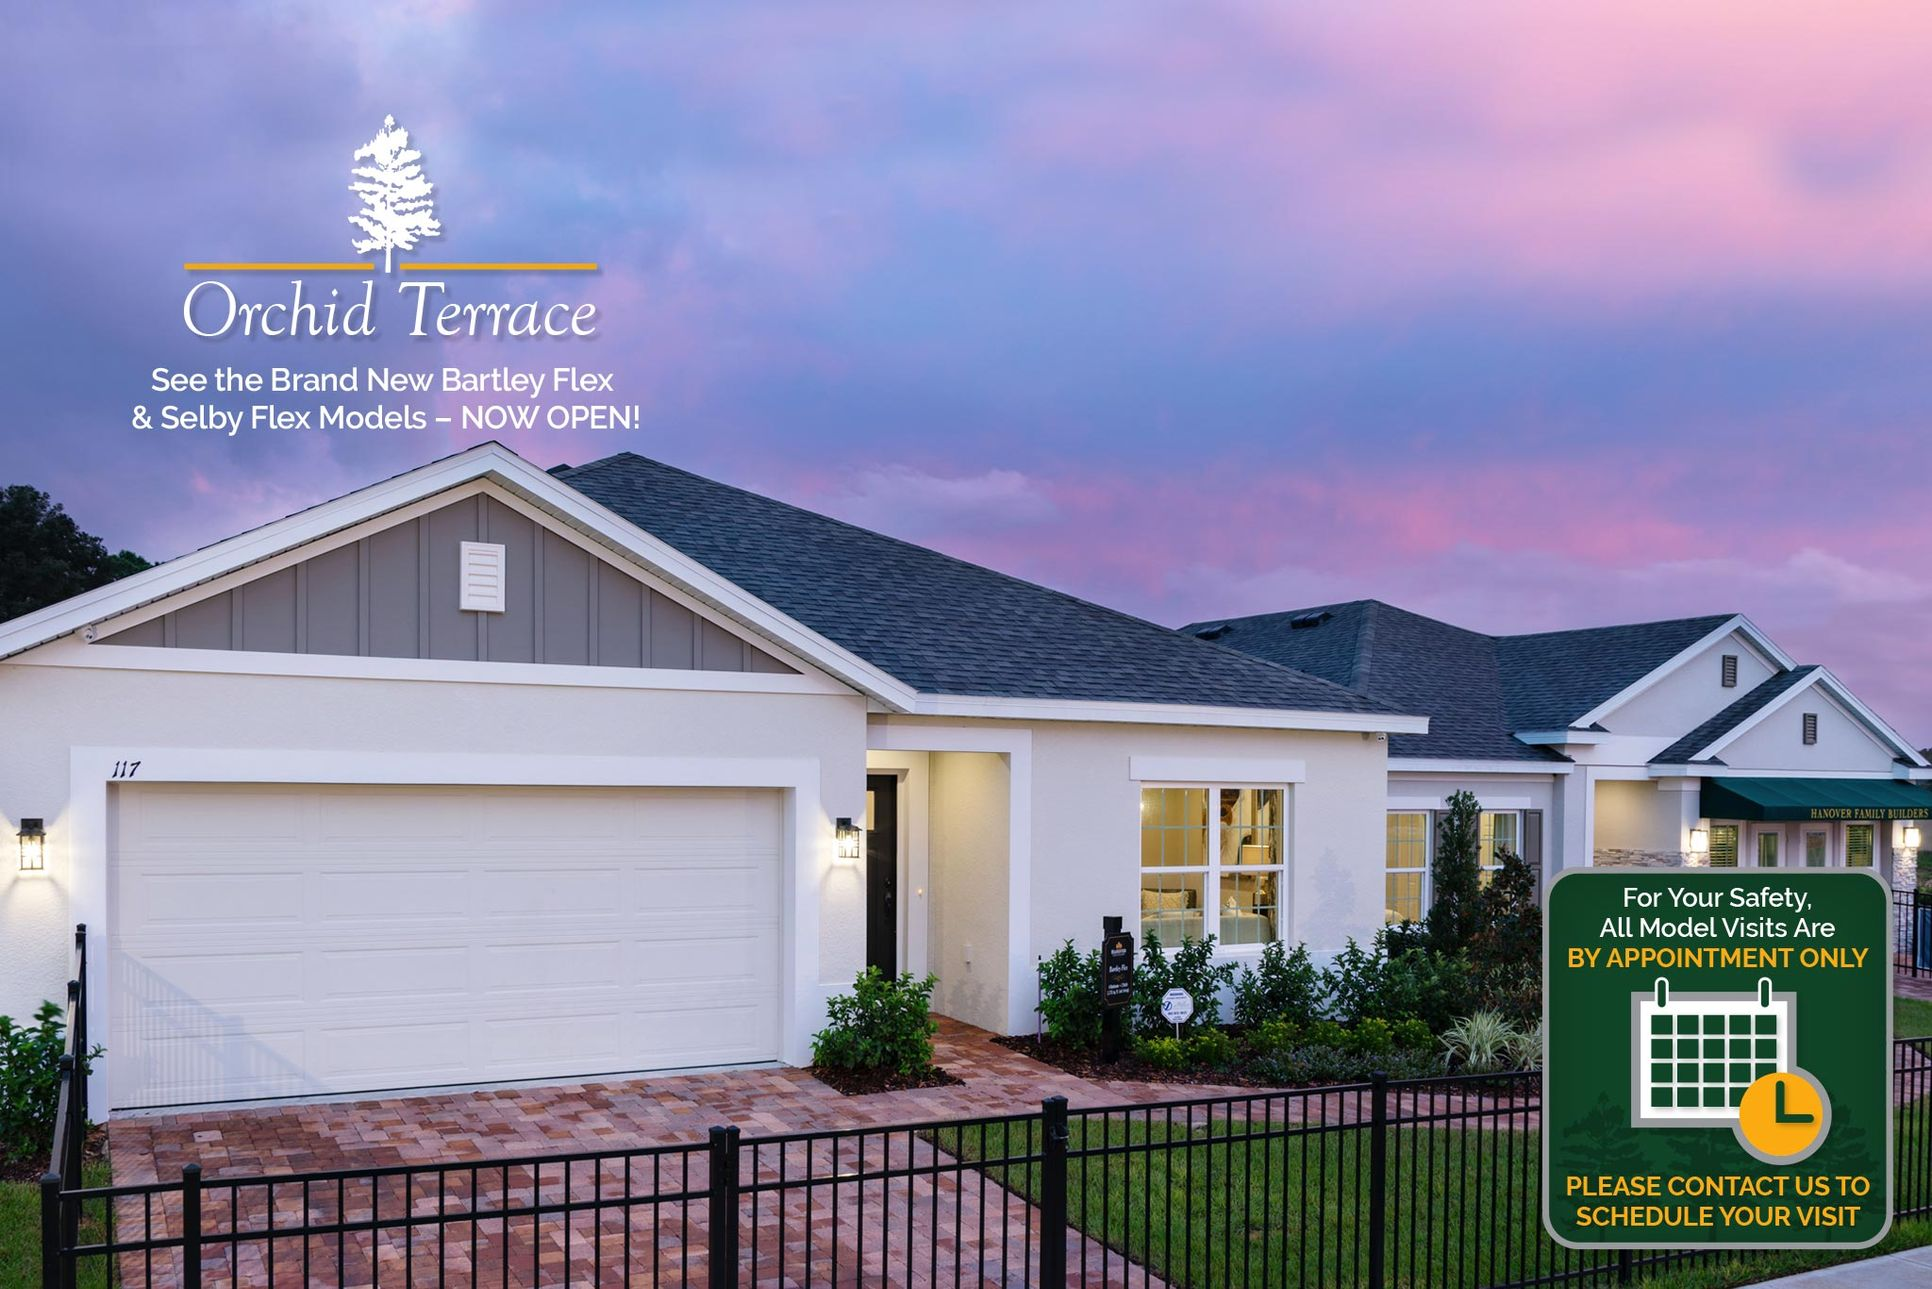 Orchid Terrace in Haines City Model Home Showcase